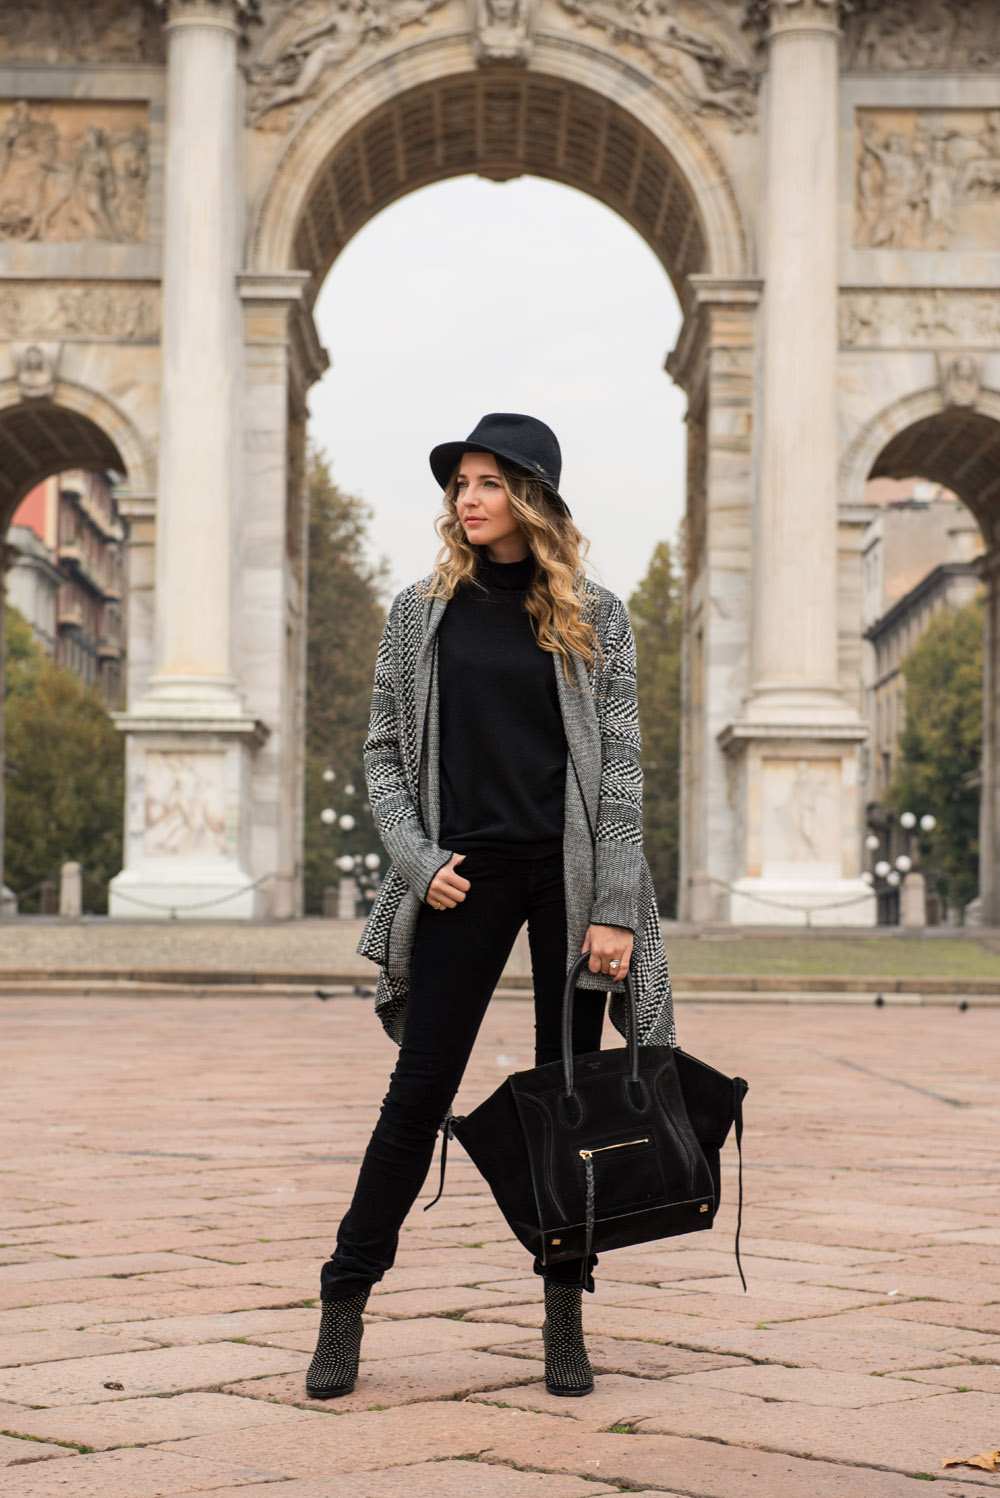 What to wear with a black and white cardigan